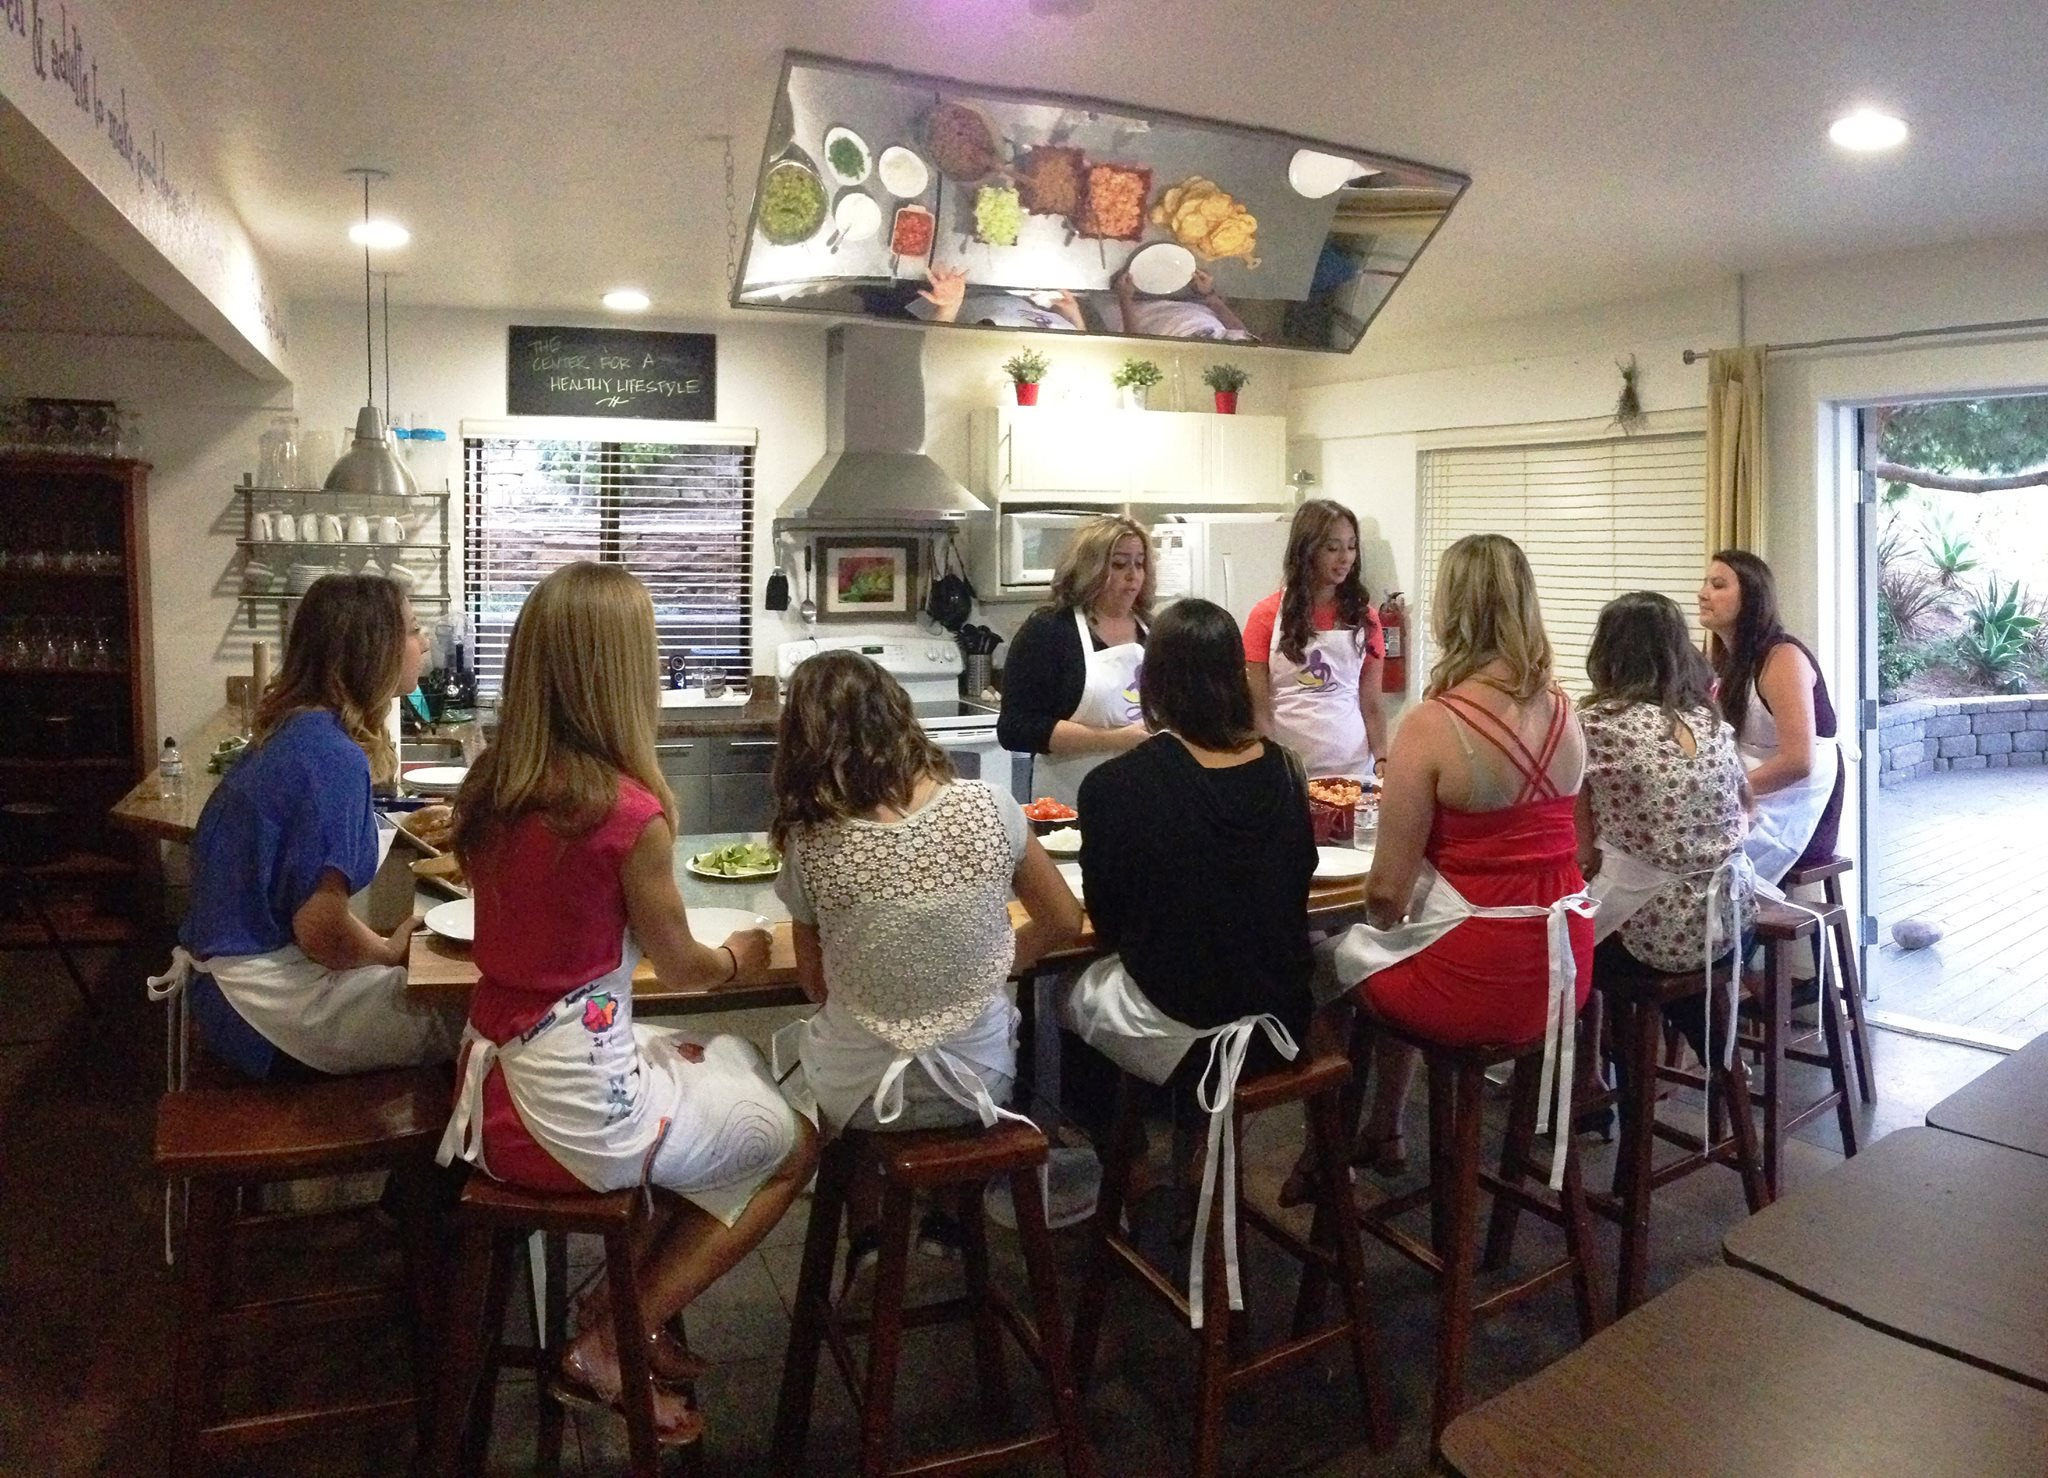 Chula's Mission founders Mayra San Juan and Lyndsey Ruiz work with mentees in the kitchen.